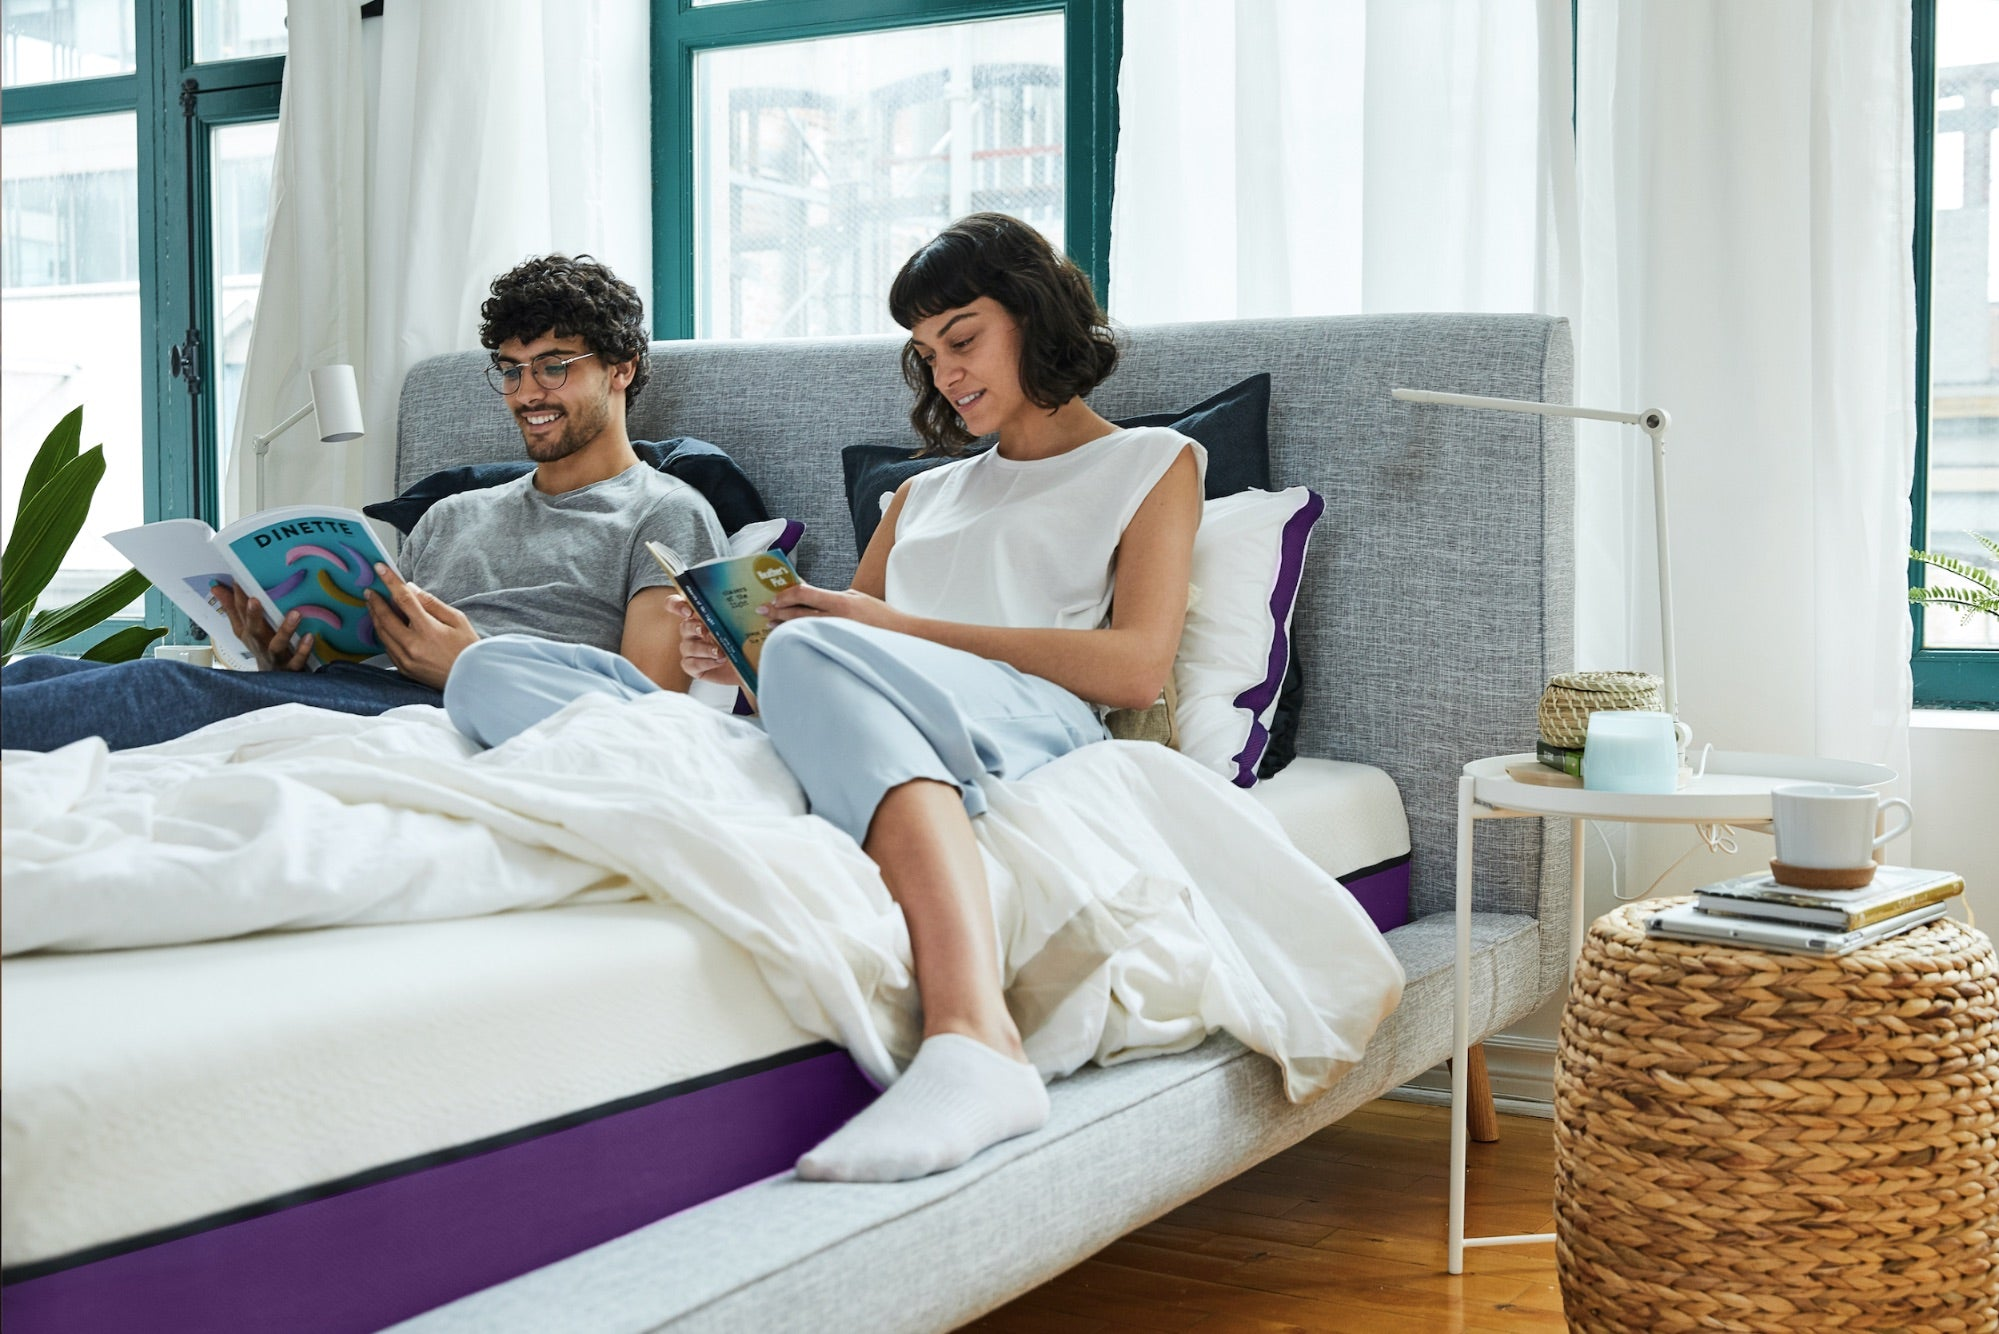 BFCM roundup, a couple sitting against the headboard of a Polysleep mattress